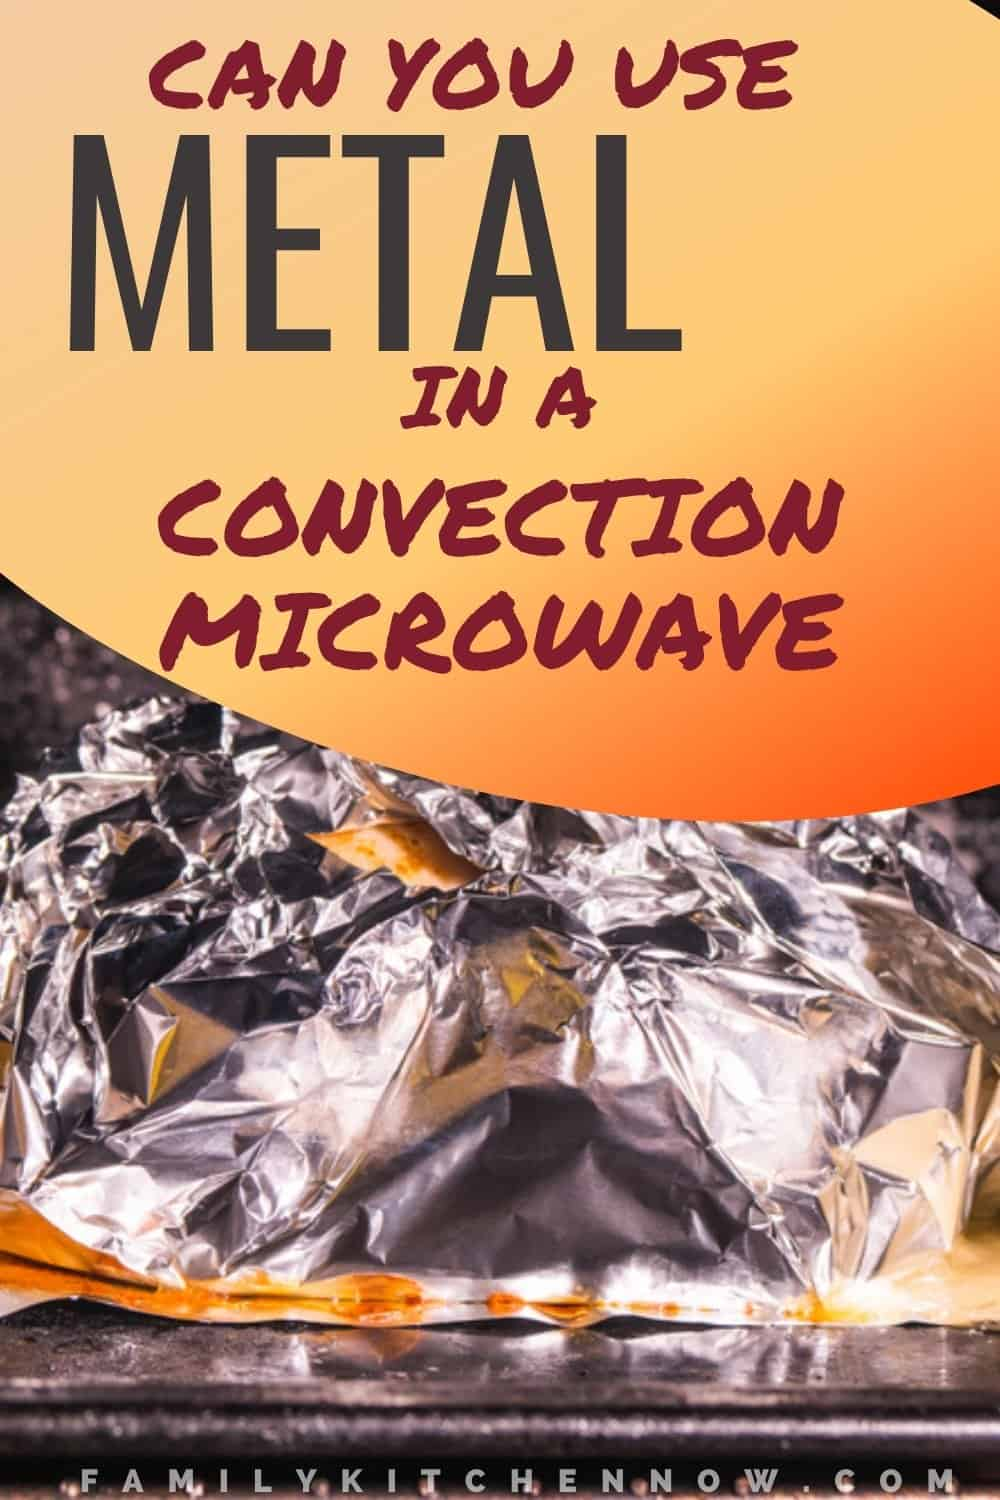 Can you put metal in a convection microwave?